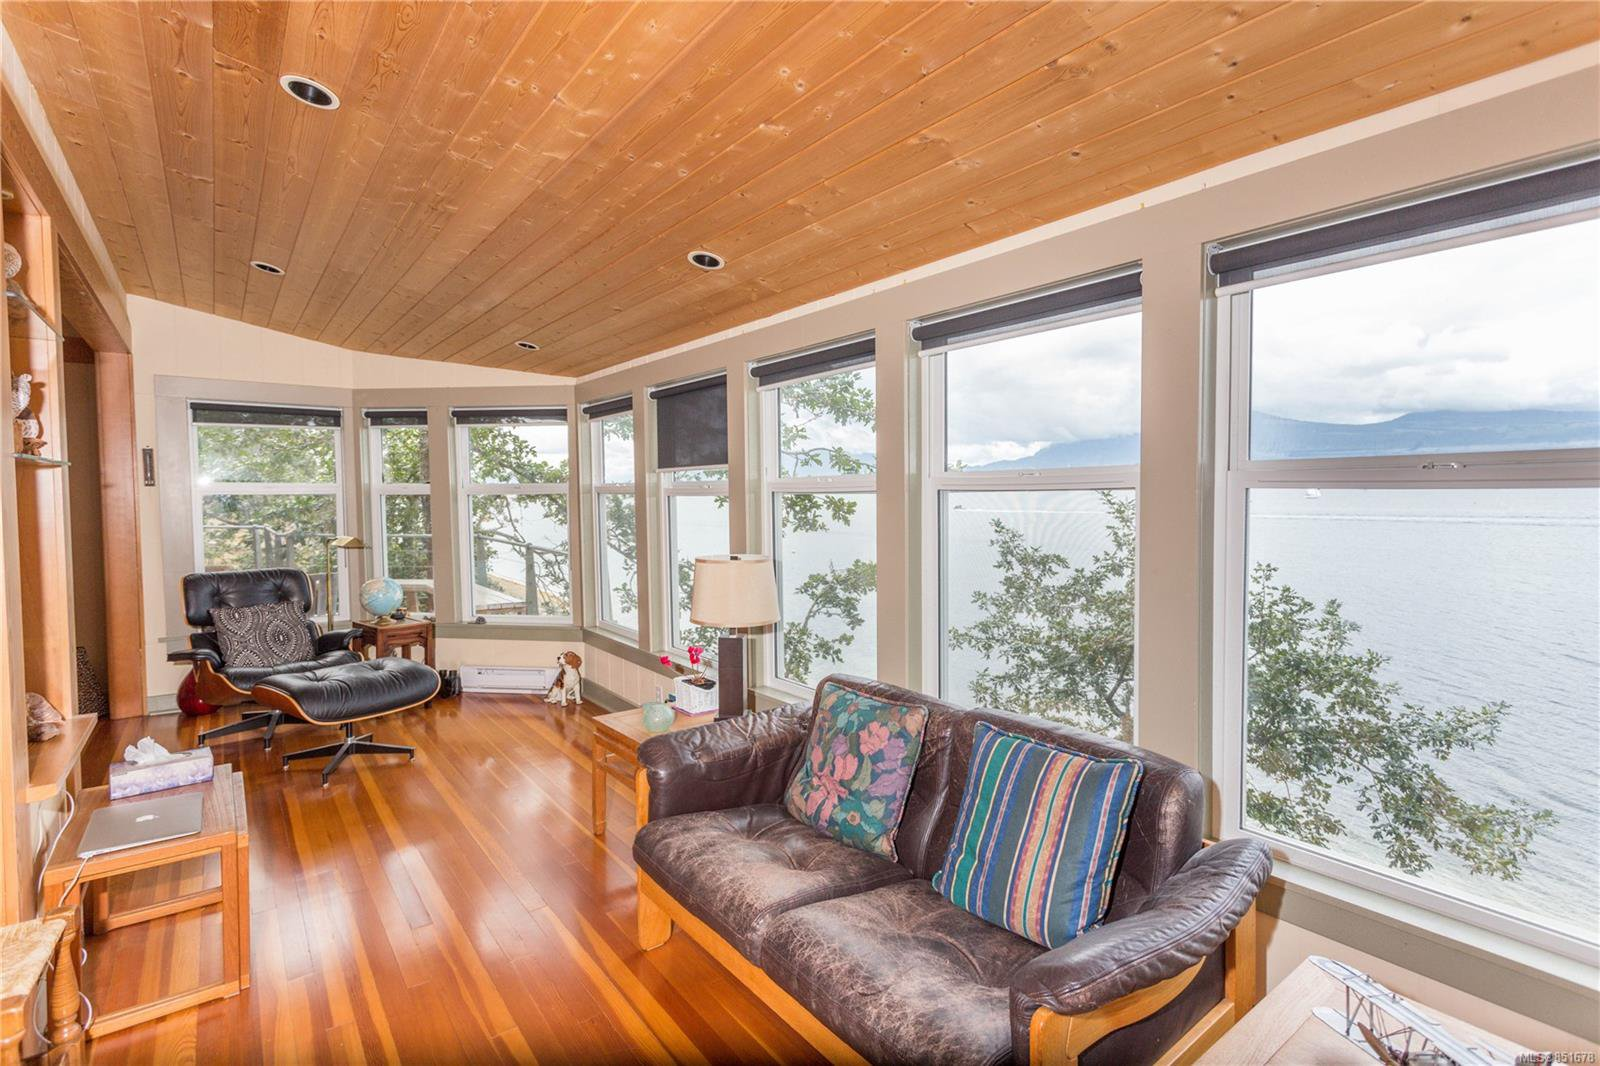 Photo 11: Photos: 262 Forbes Dr in : Isl Thetis Island House for sale (Islands)  : MLS®# 851678